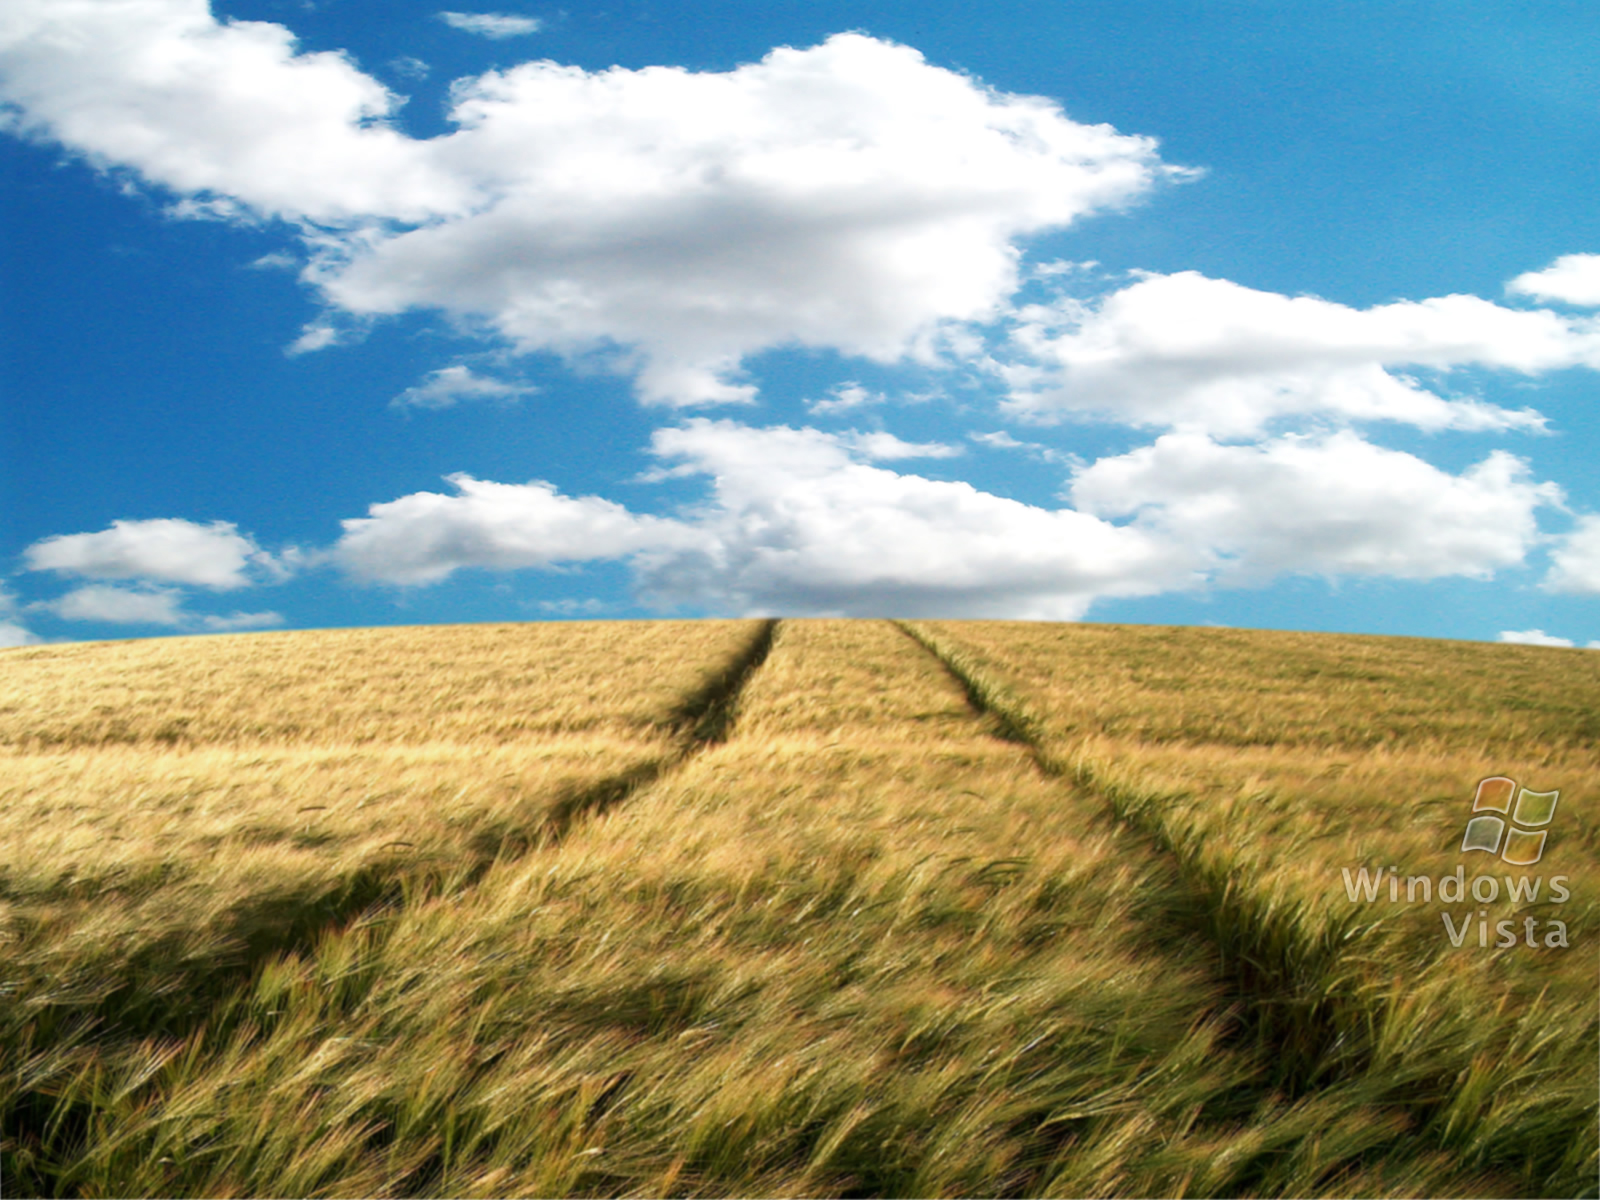 Linux Animated Wallpaper Vista Hayfield Wallpapers Vista Hayfield Stock Photos